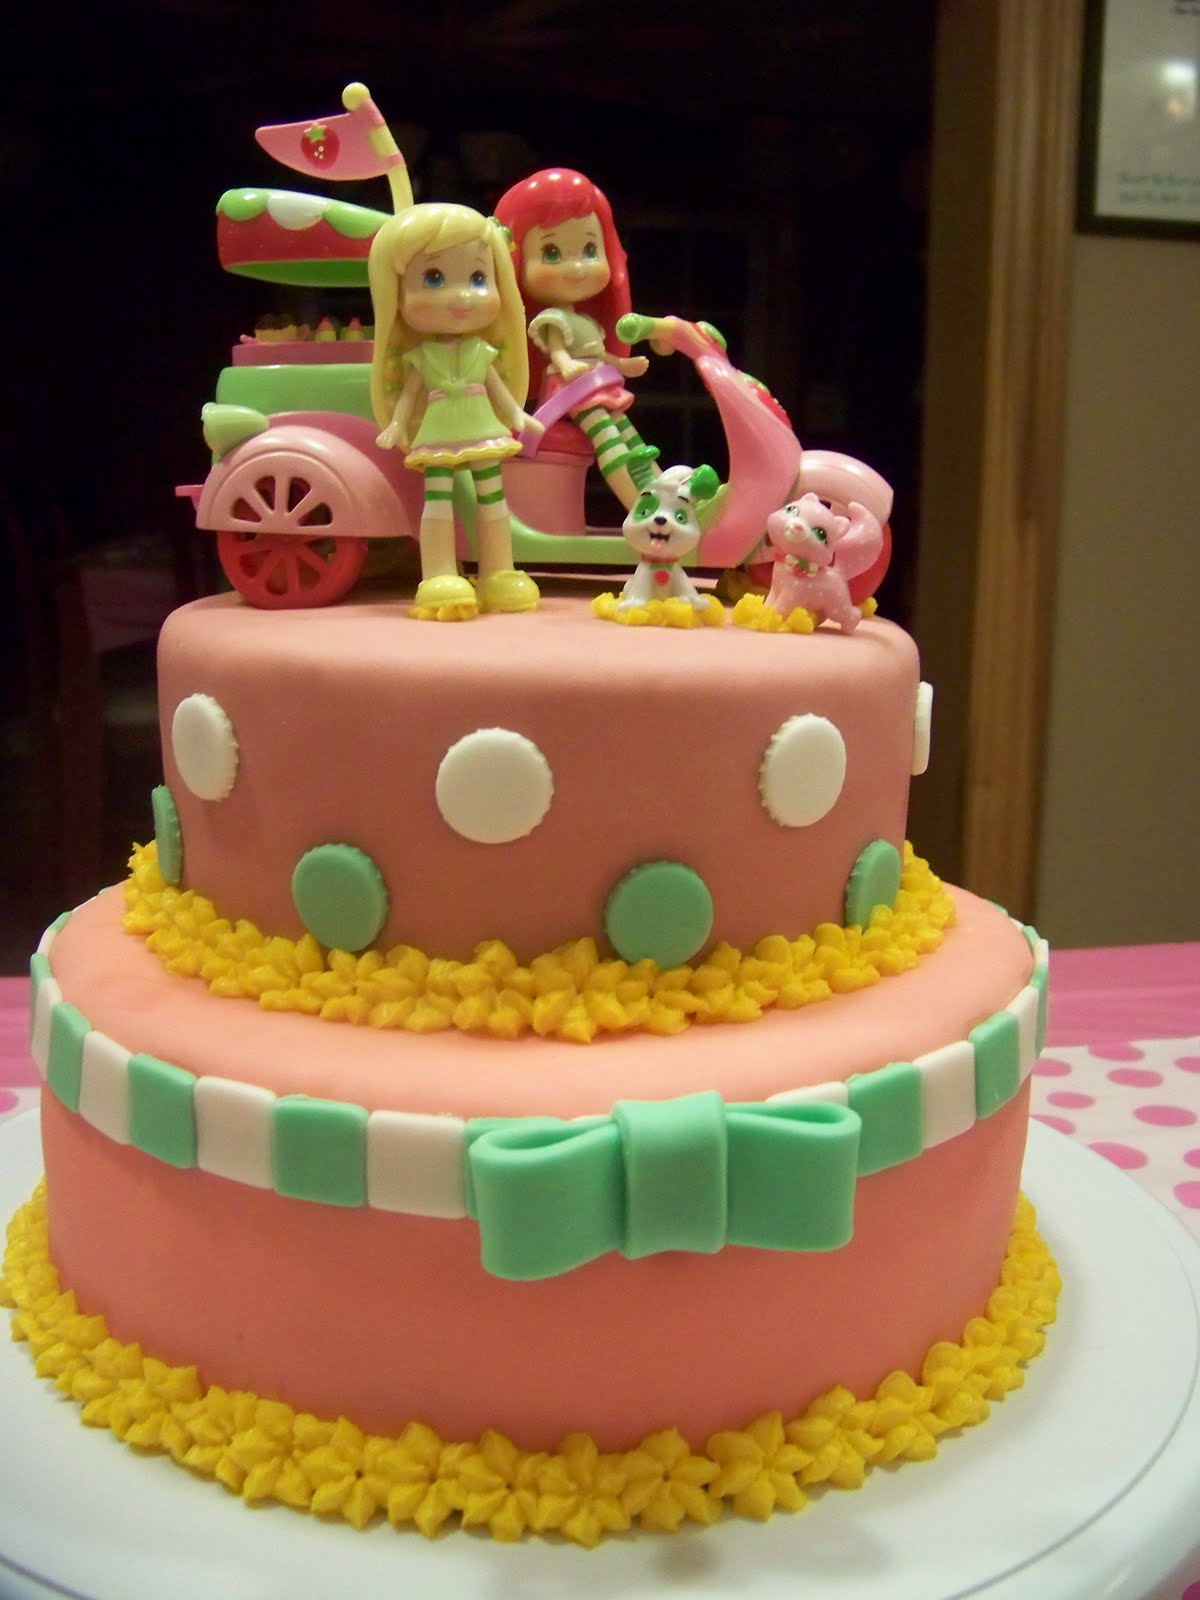 Cake Designs For Boys 5 Years